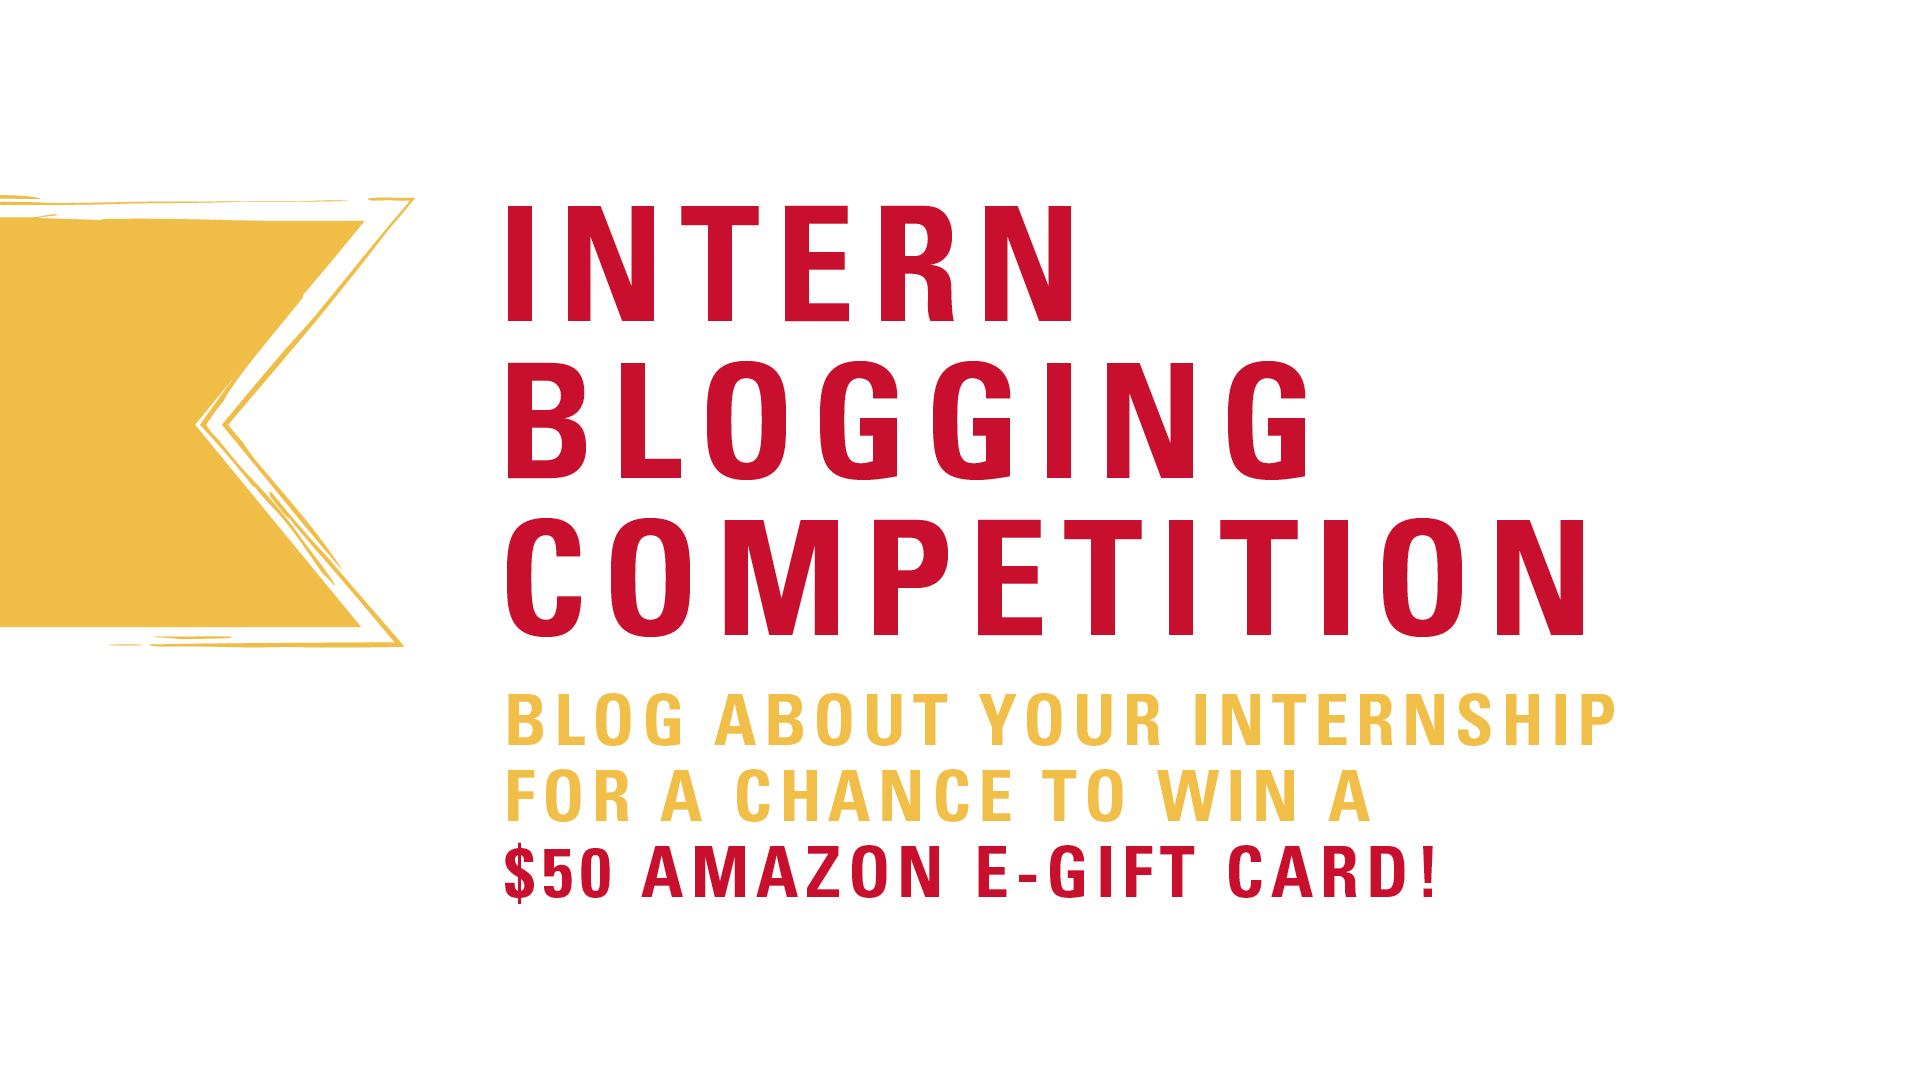 Intern Blogging Competition: Blog about your internship for a chance to win a $50 Amazon E-Gift Card